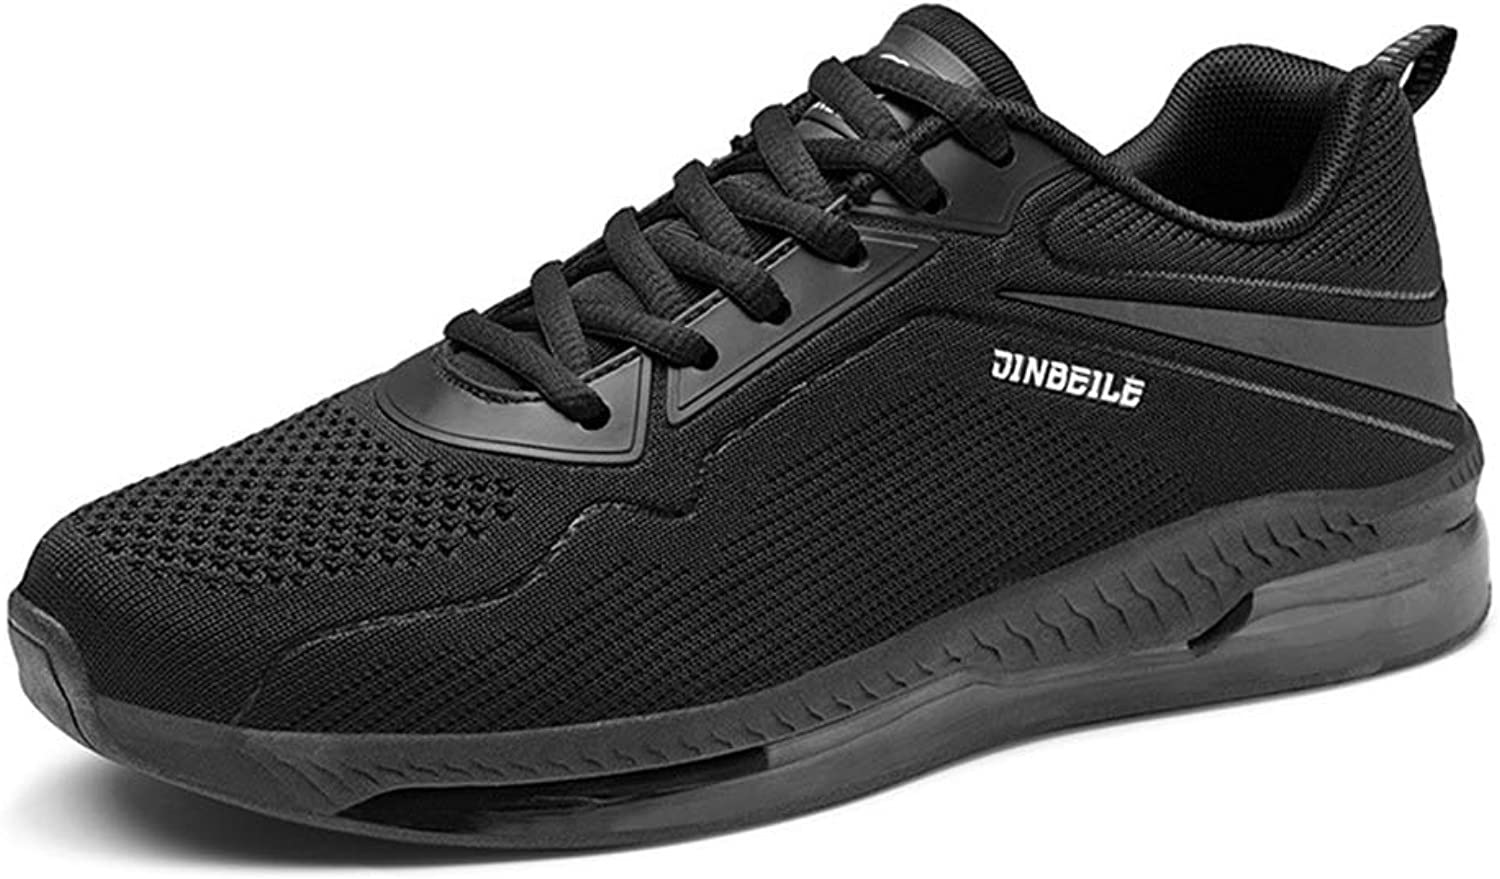 Qiusa Mens Breathable Running shoes Casual Durable Non Slip Comfort Sport shoes (color   Black, Size   UK 7)